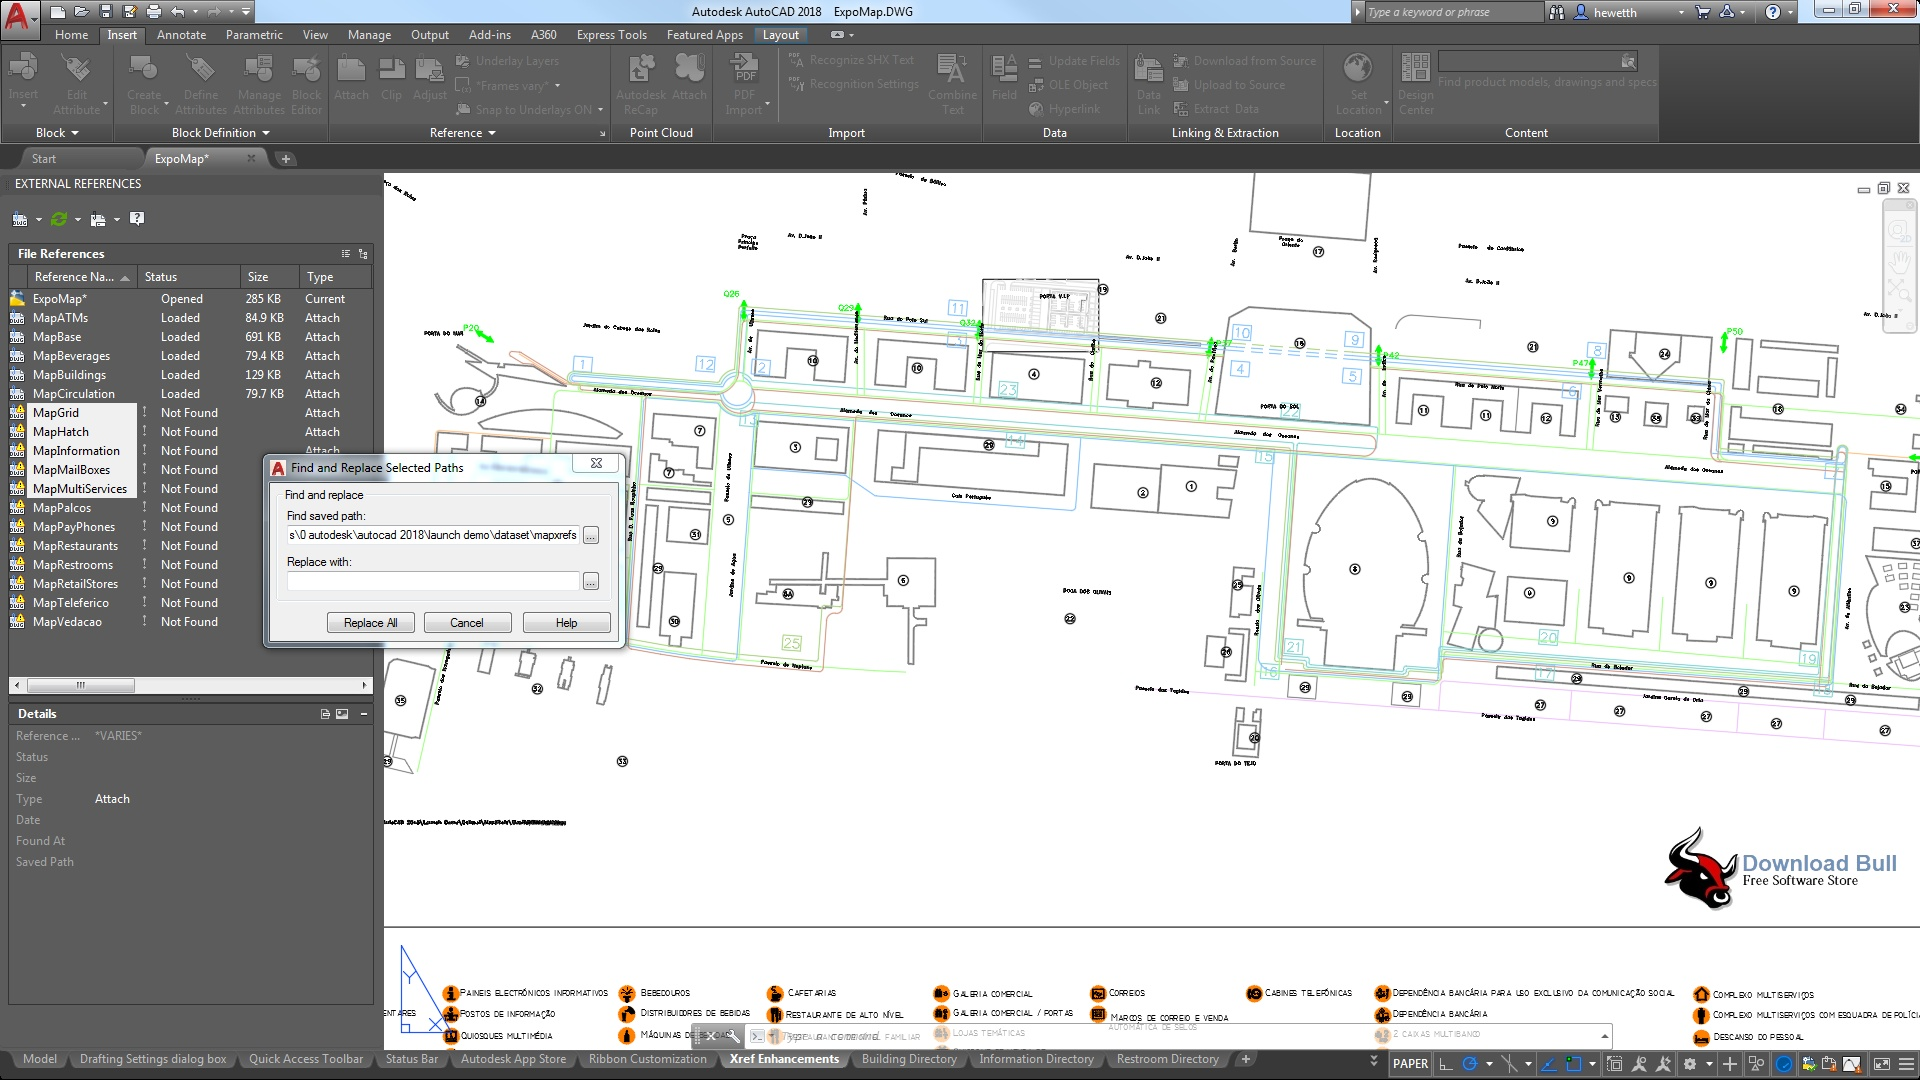 Download Autodesk AutoCAD 2018 Free